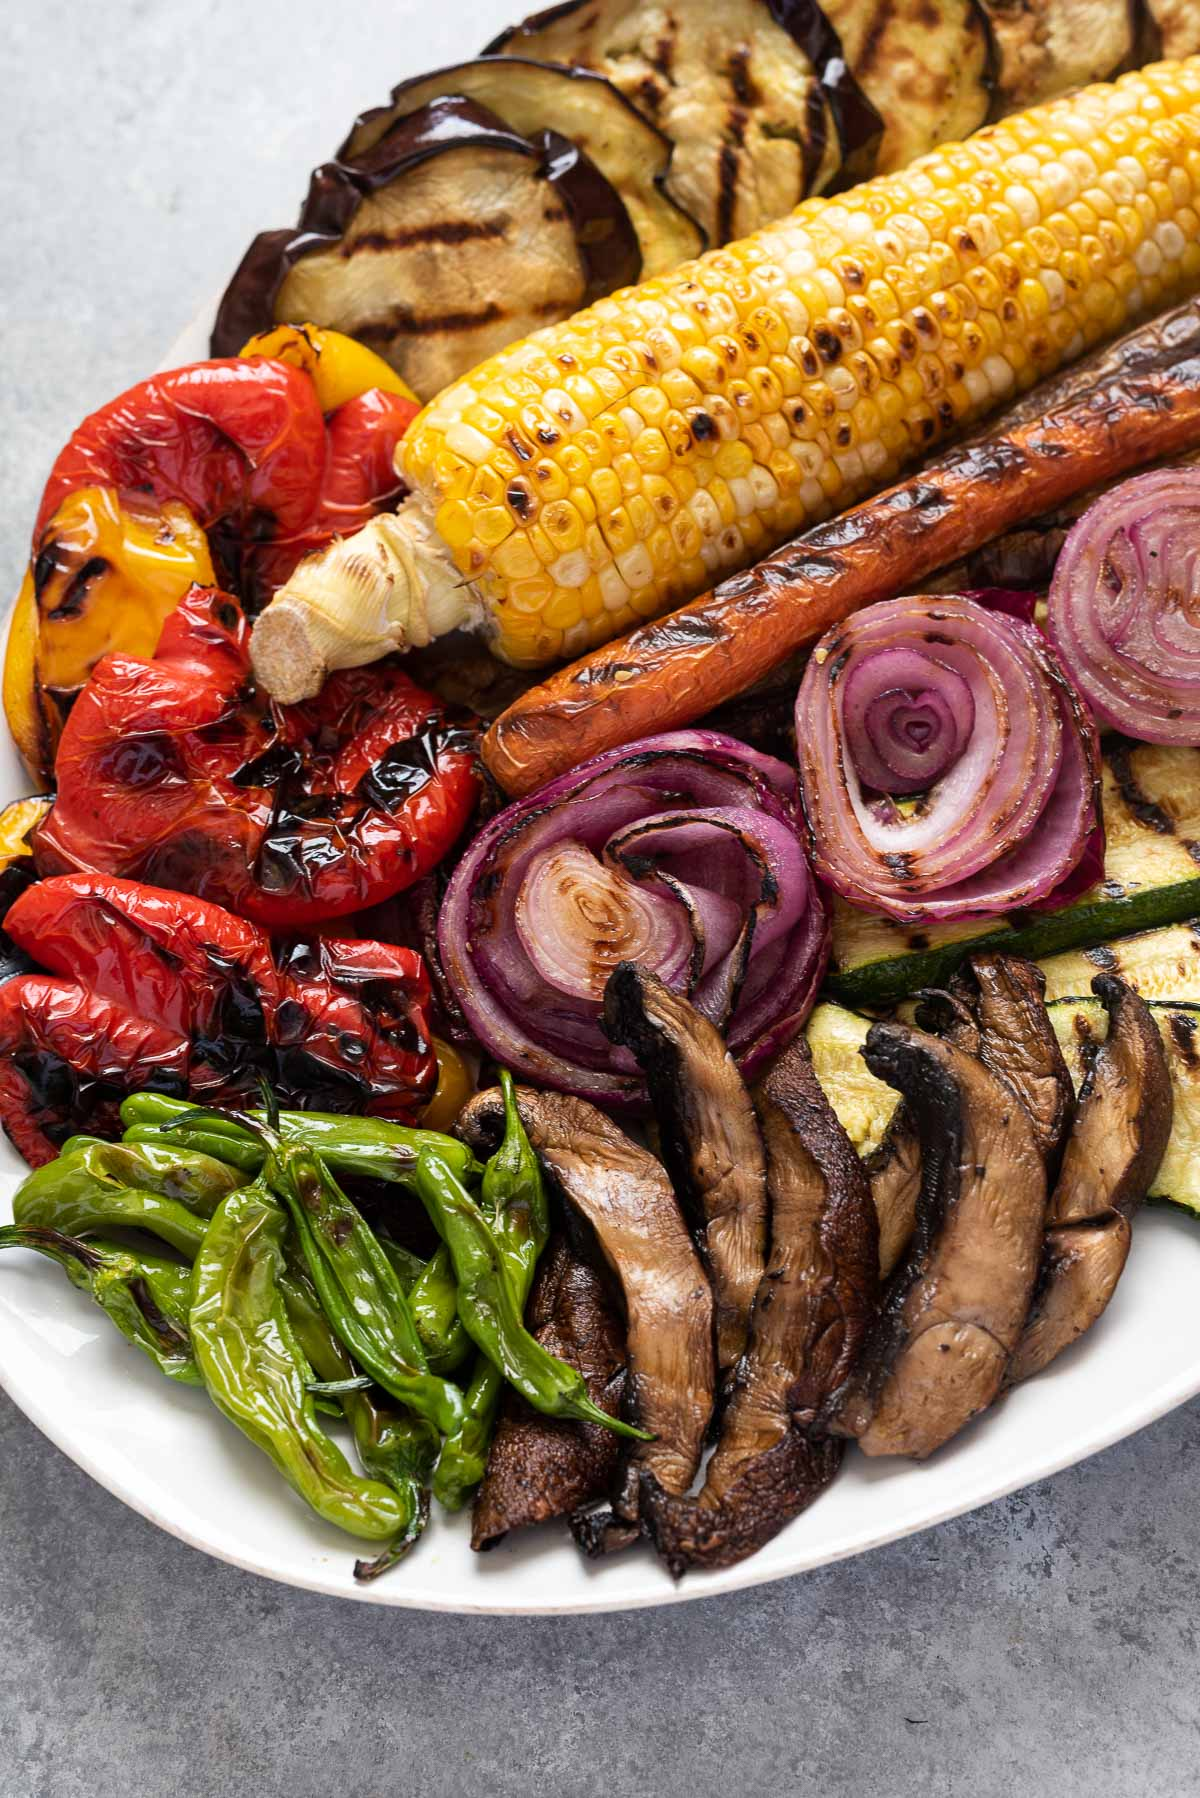 Platter filled with an array of grilled vegetables